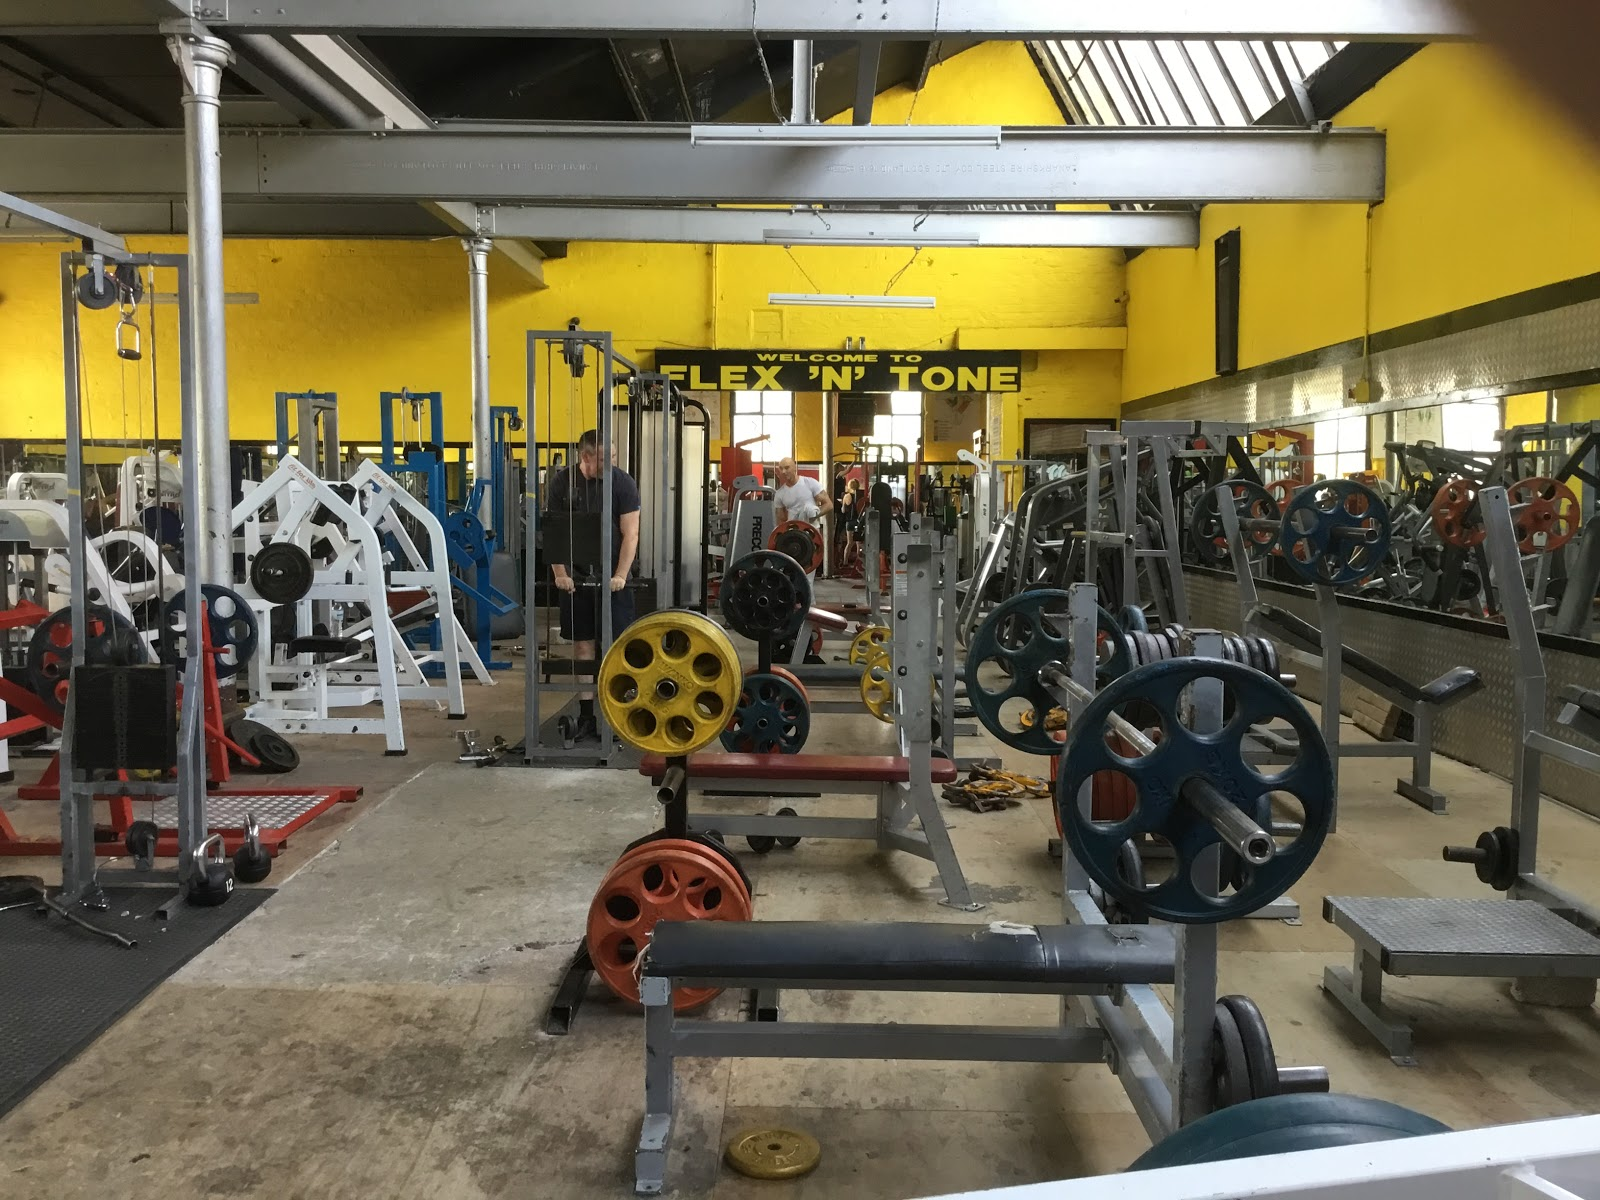 Flex N Tone old school bodybuilding gym & fitness centre - photo